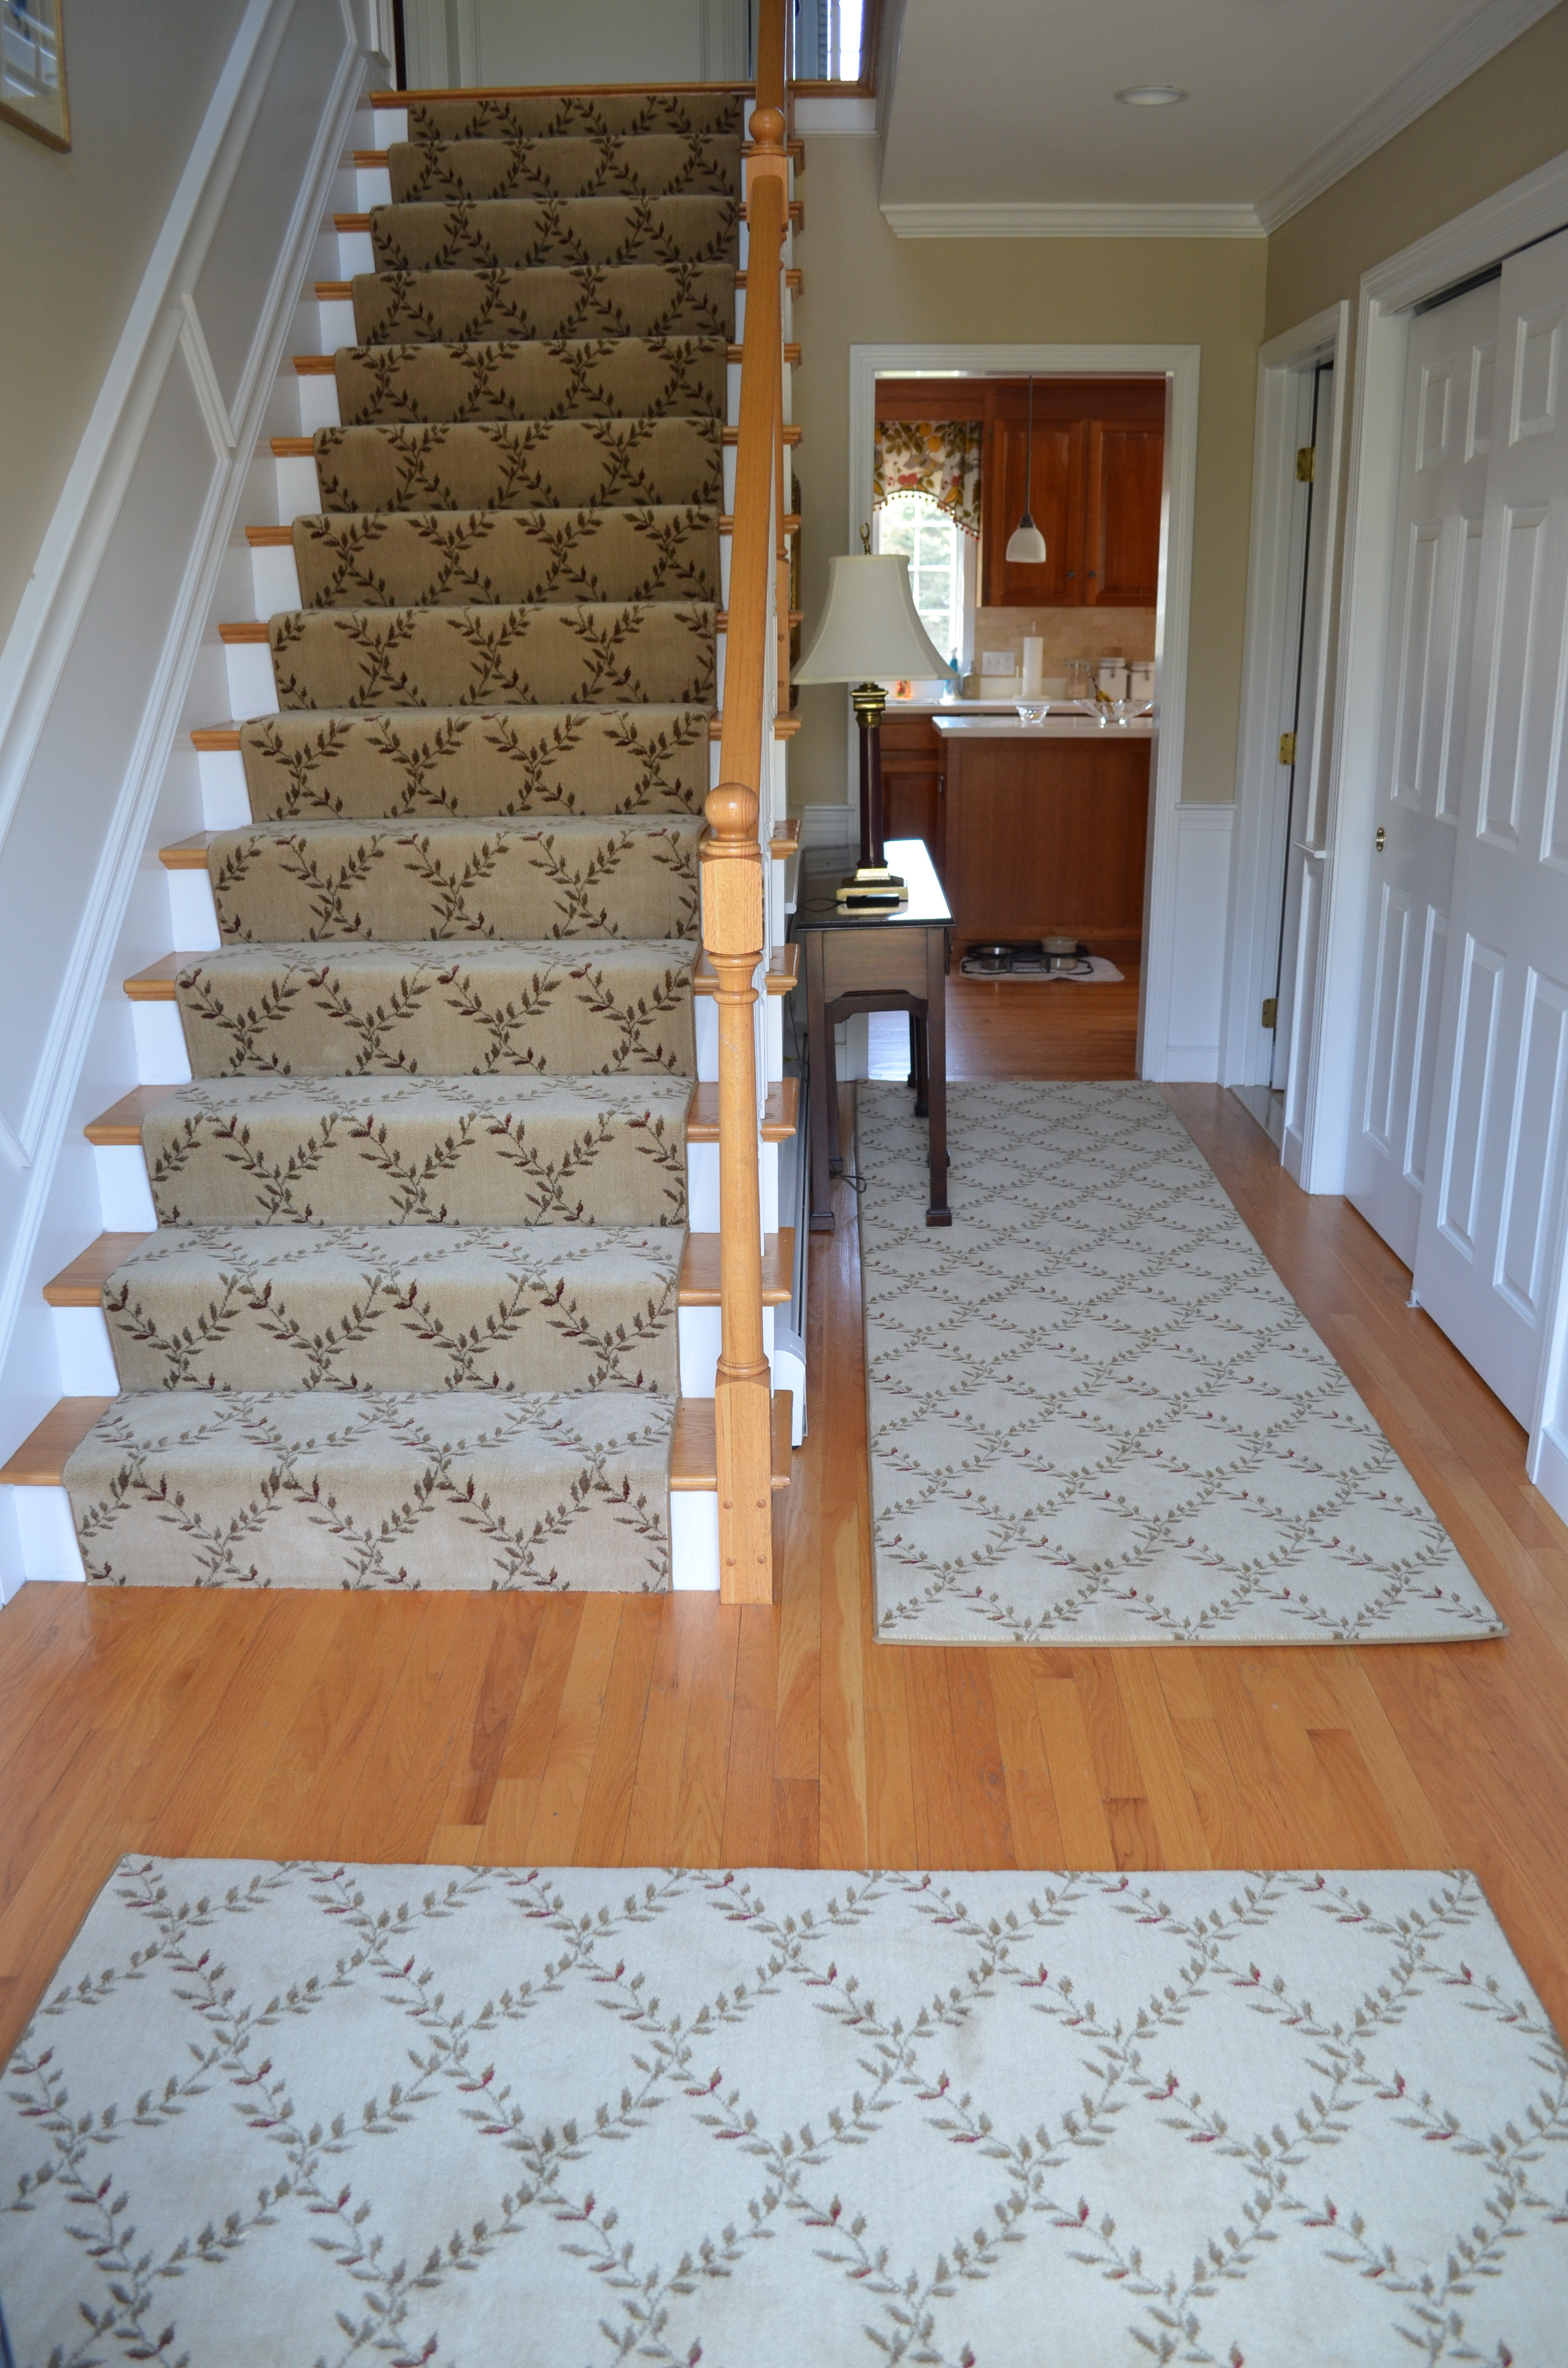 Carpet Runner For Stairs Within Black Rug Runners For Hallways (#3 of 20)